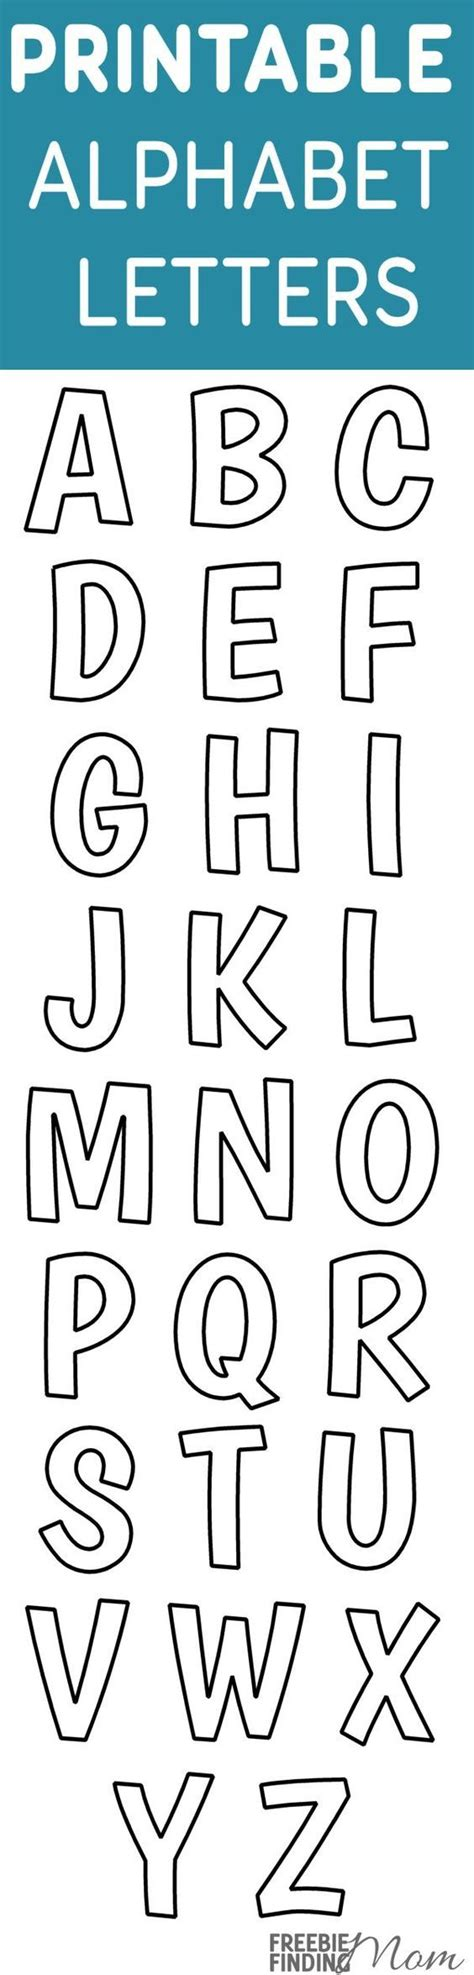 printable alphabet letters for crafts alphabet templates alphabet and school craft on pinterest